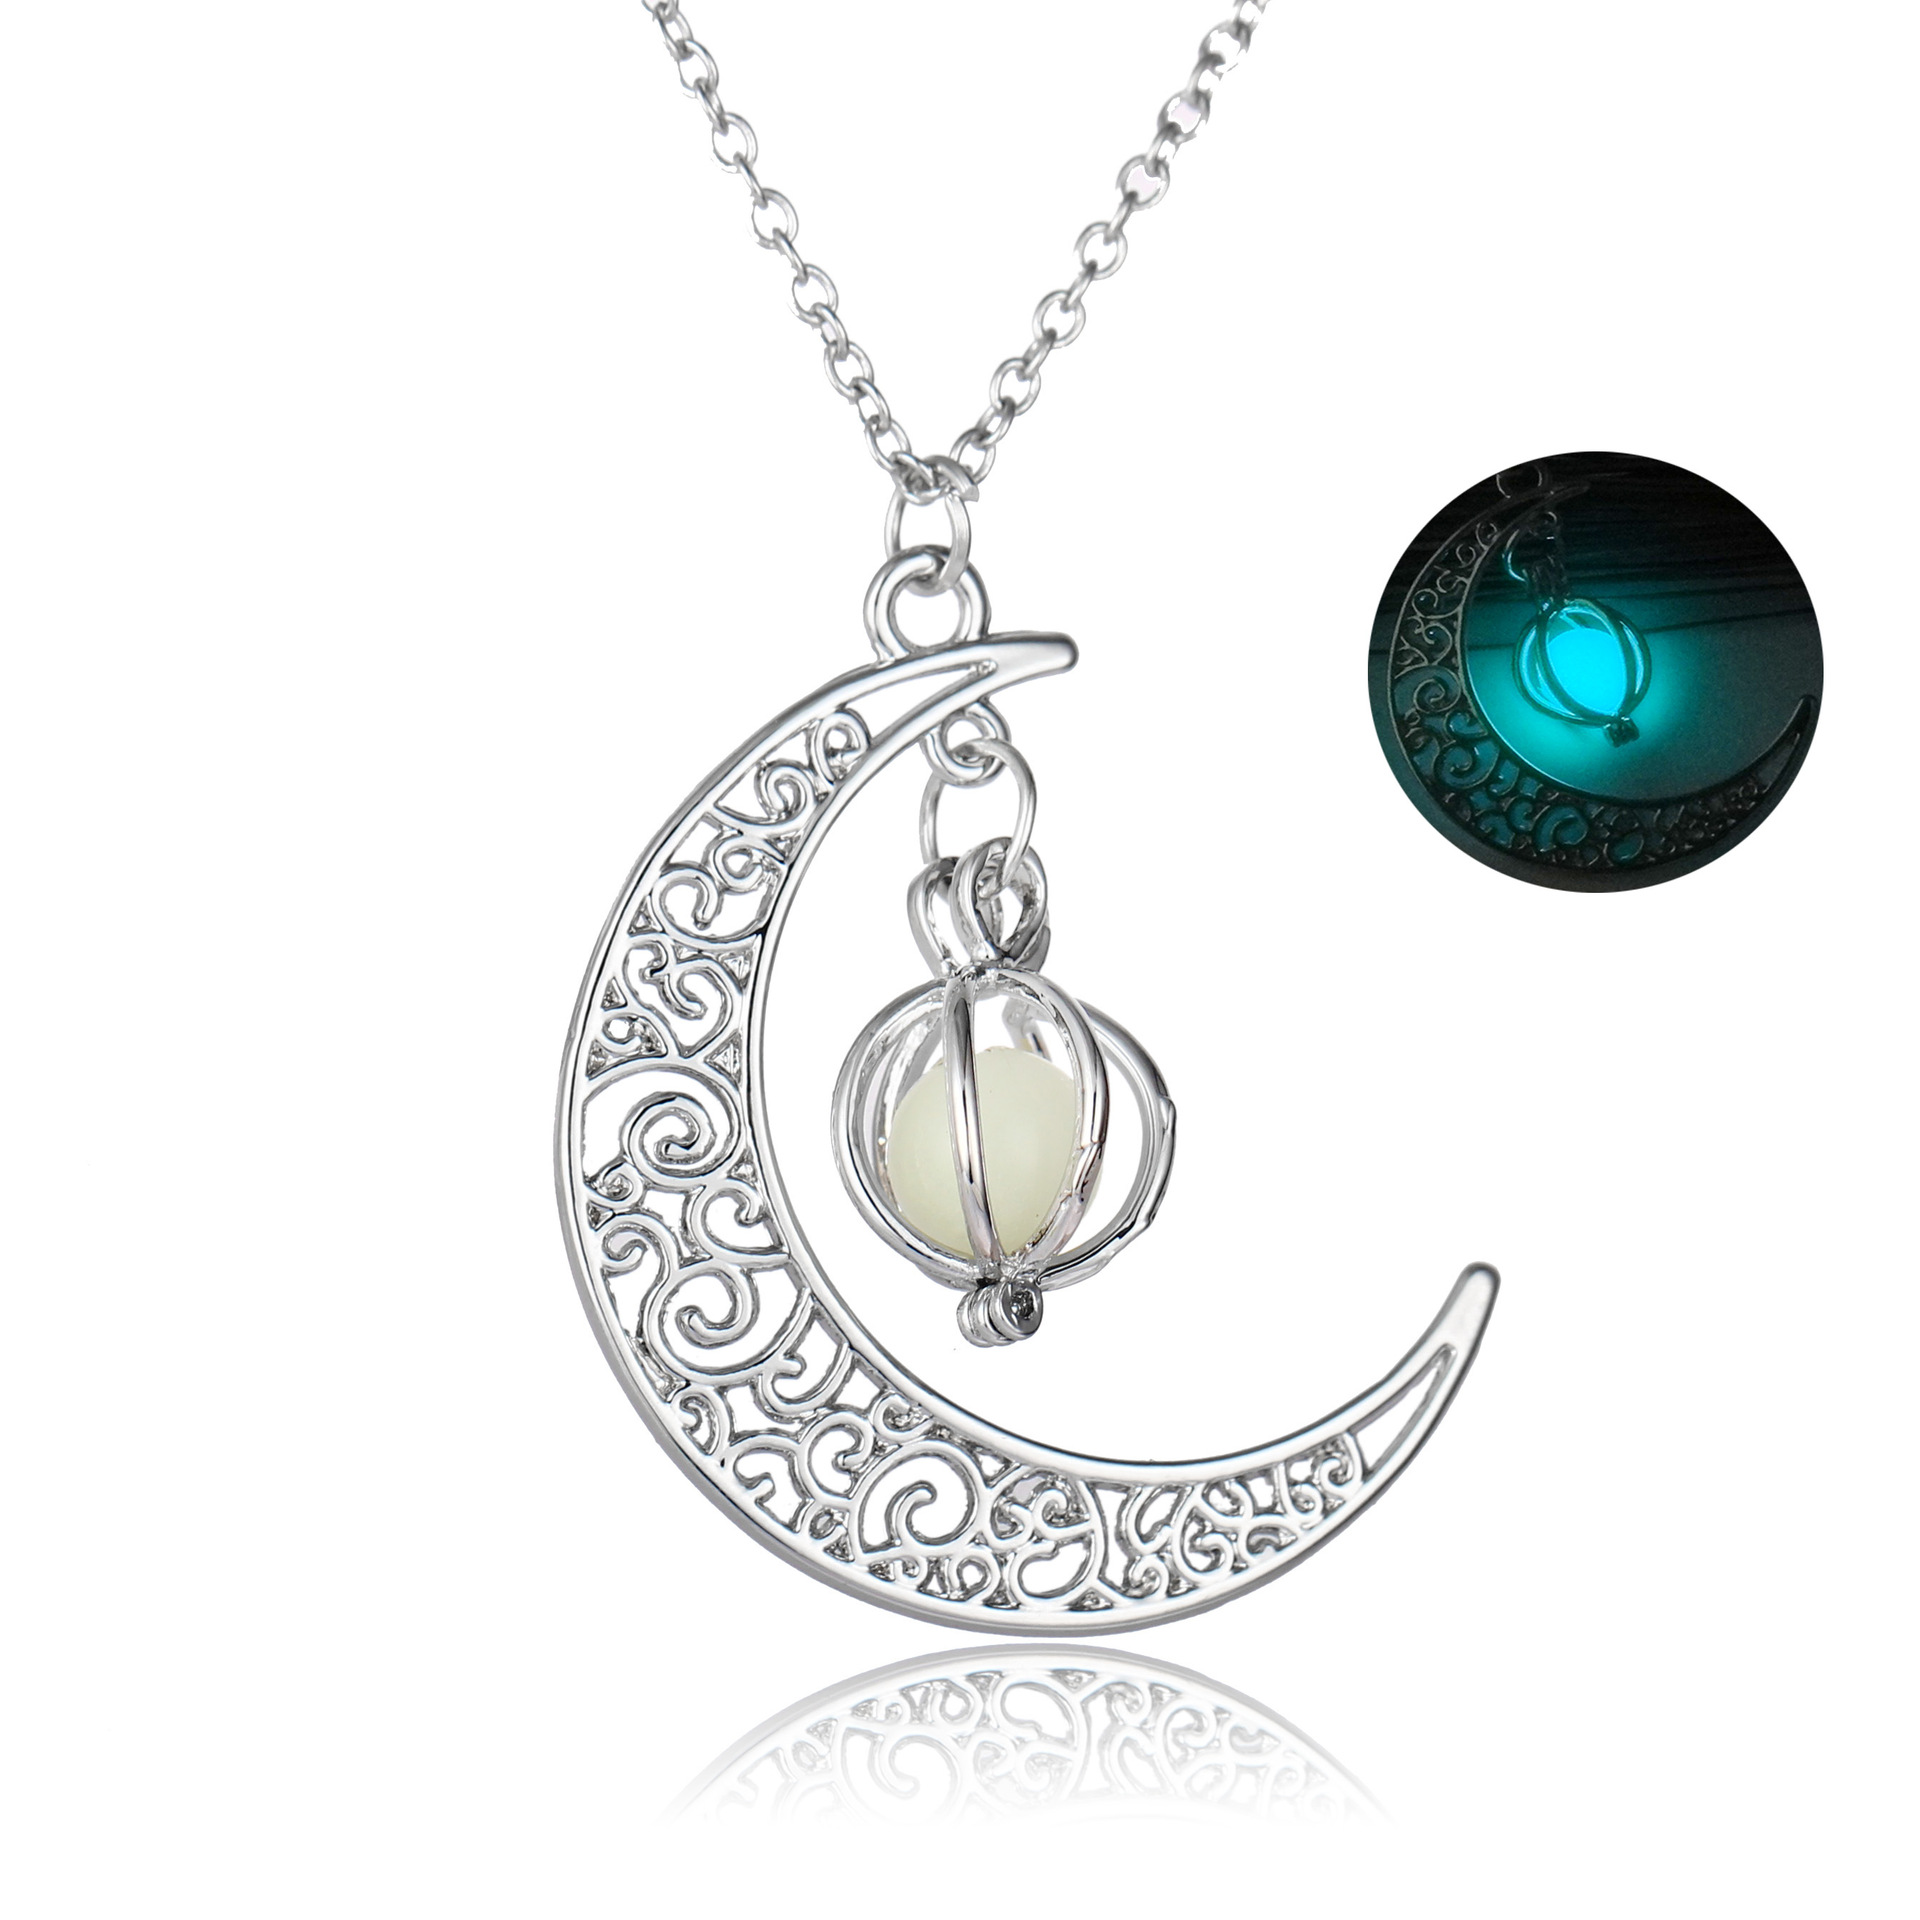 Halloween Decorations Gifts Ornaments Christmas Gifts Glowing Moon Pumpkin Creative Pendant Sky Blue Luminous Women Necklace  NY353_Blue Green